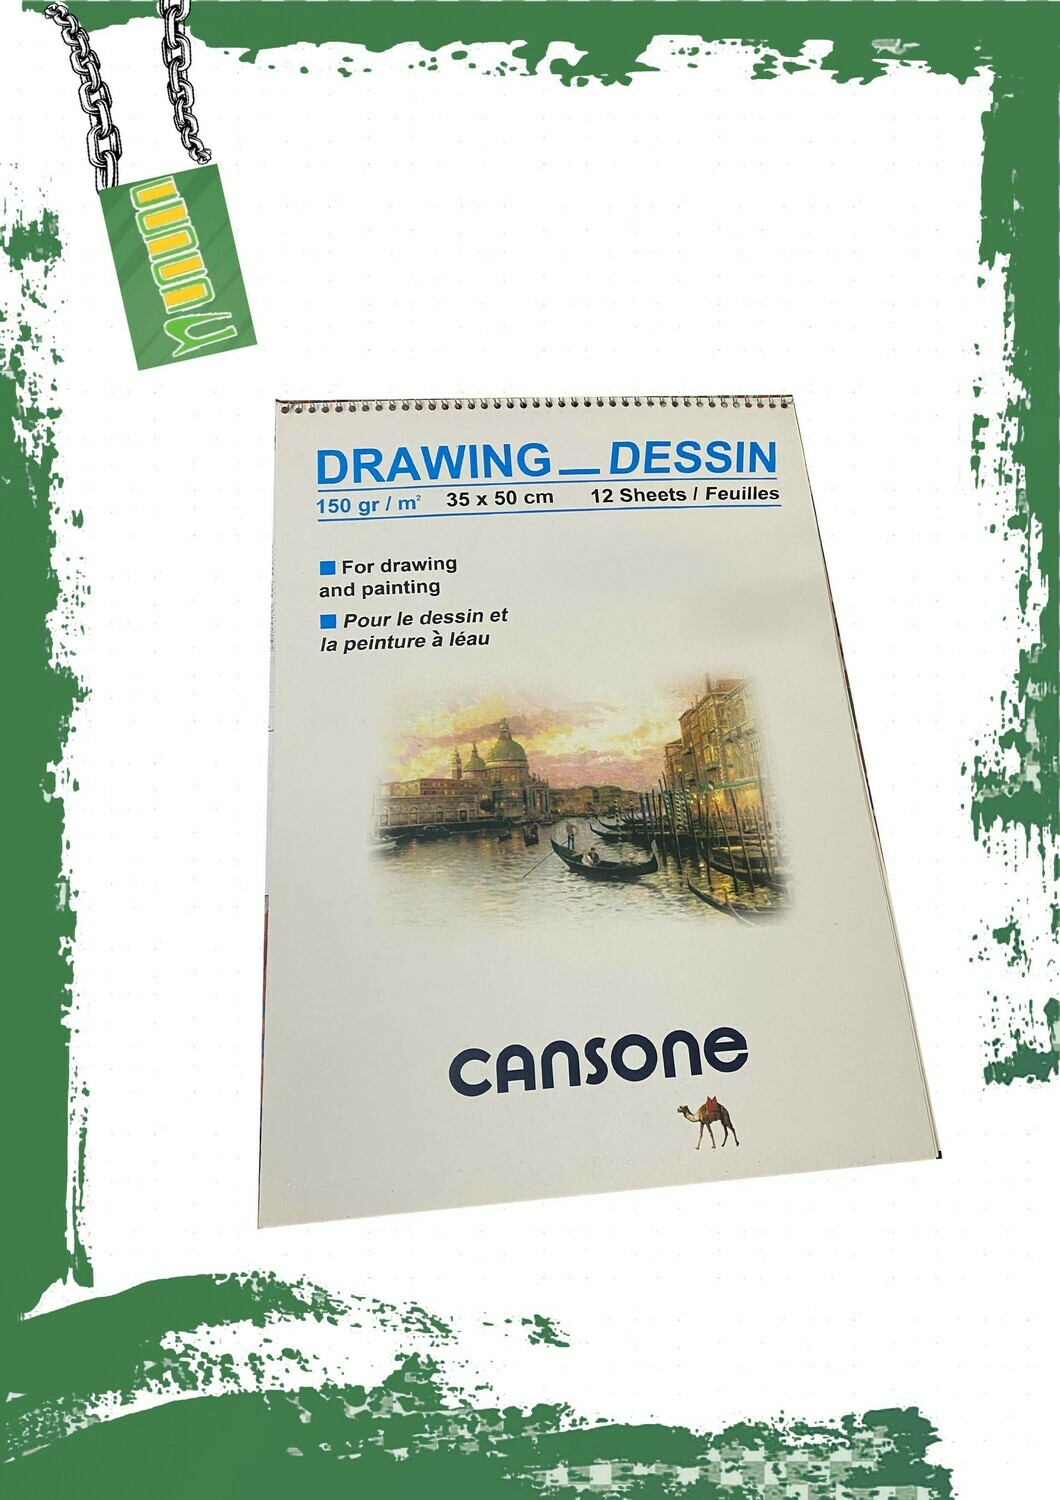 Cansone drawing sketch 150gm/m2 35*50 cm - دفتر رسم 150جم 12 ورقة